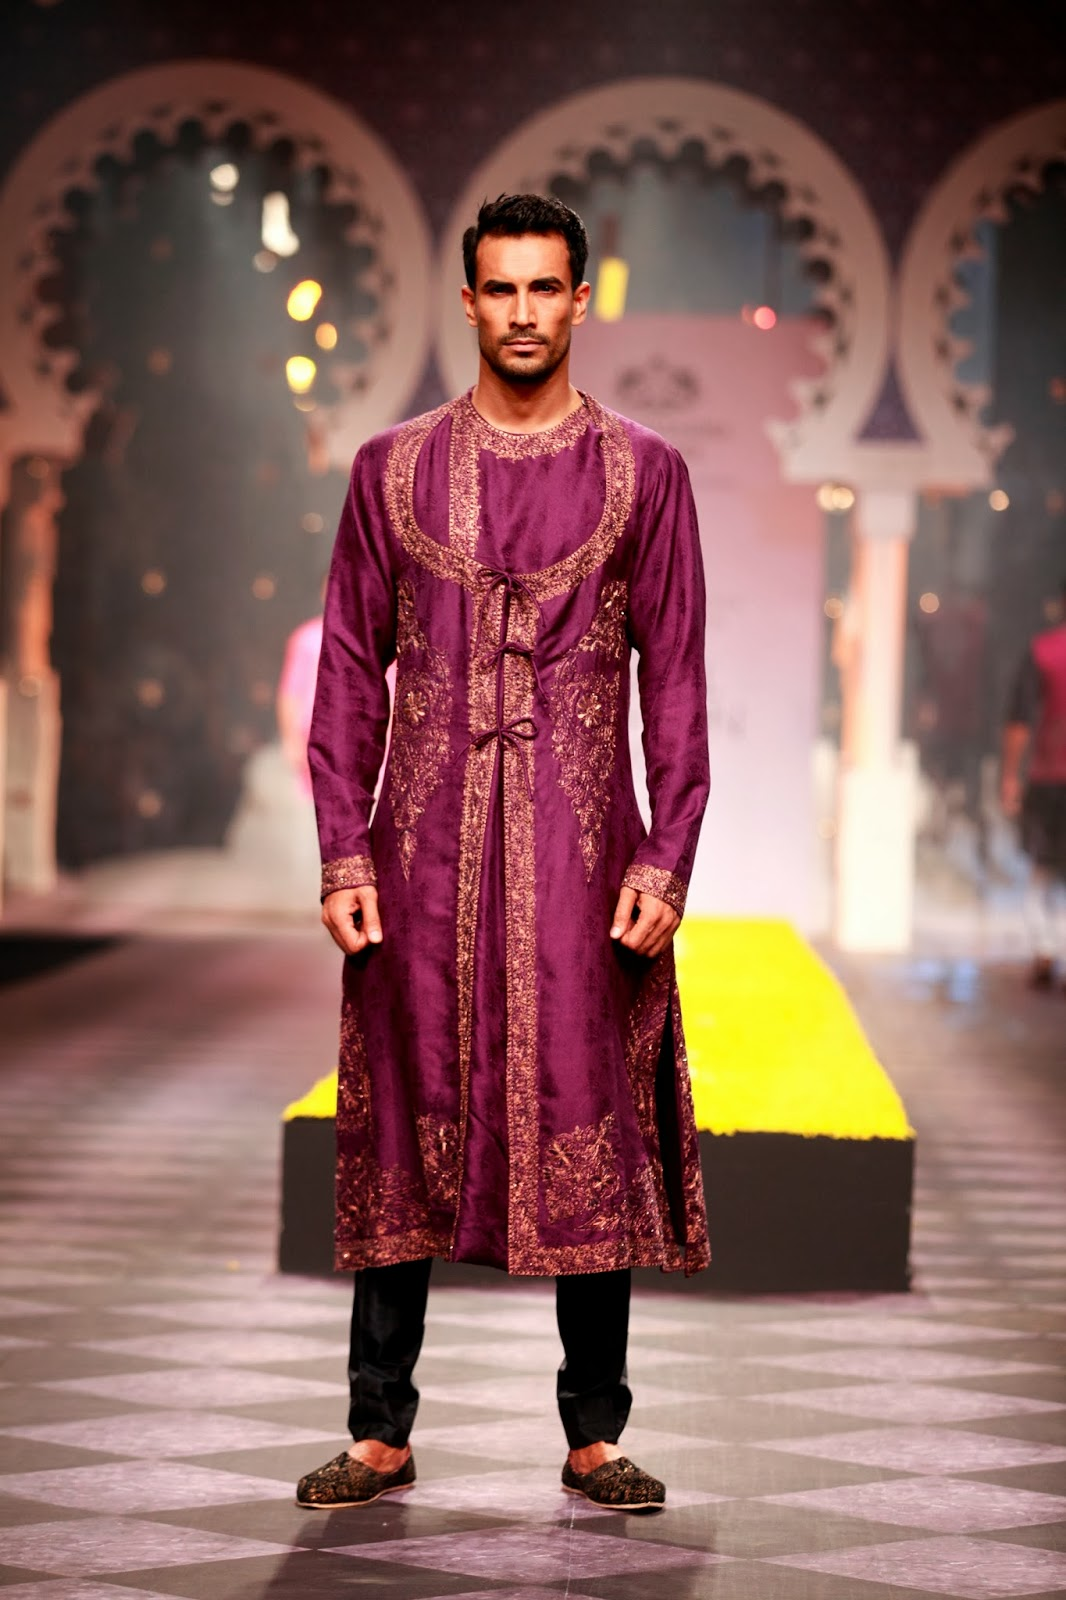 Indian Ethnic Designer Fashion Men Women By Raghavendra Rathore Stylish By Nature By Shalini